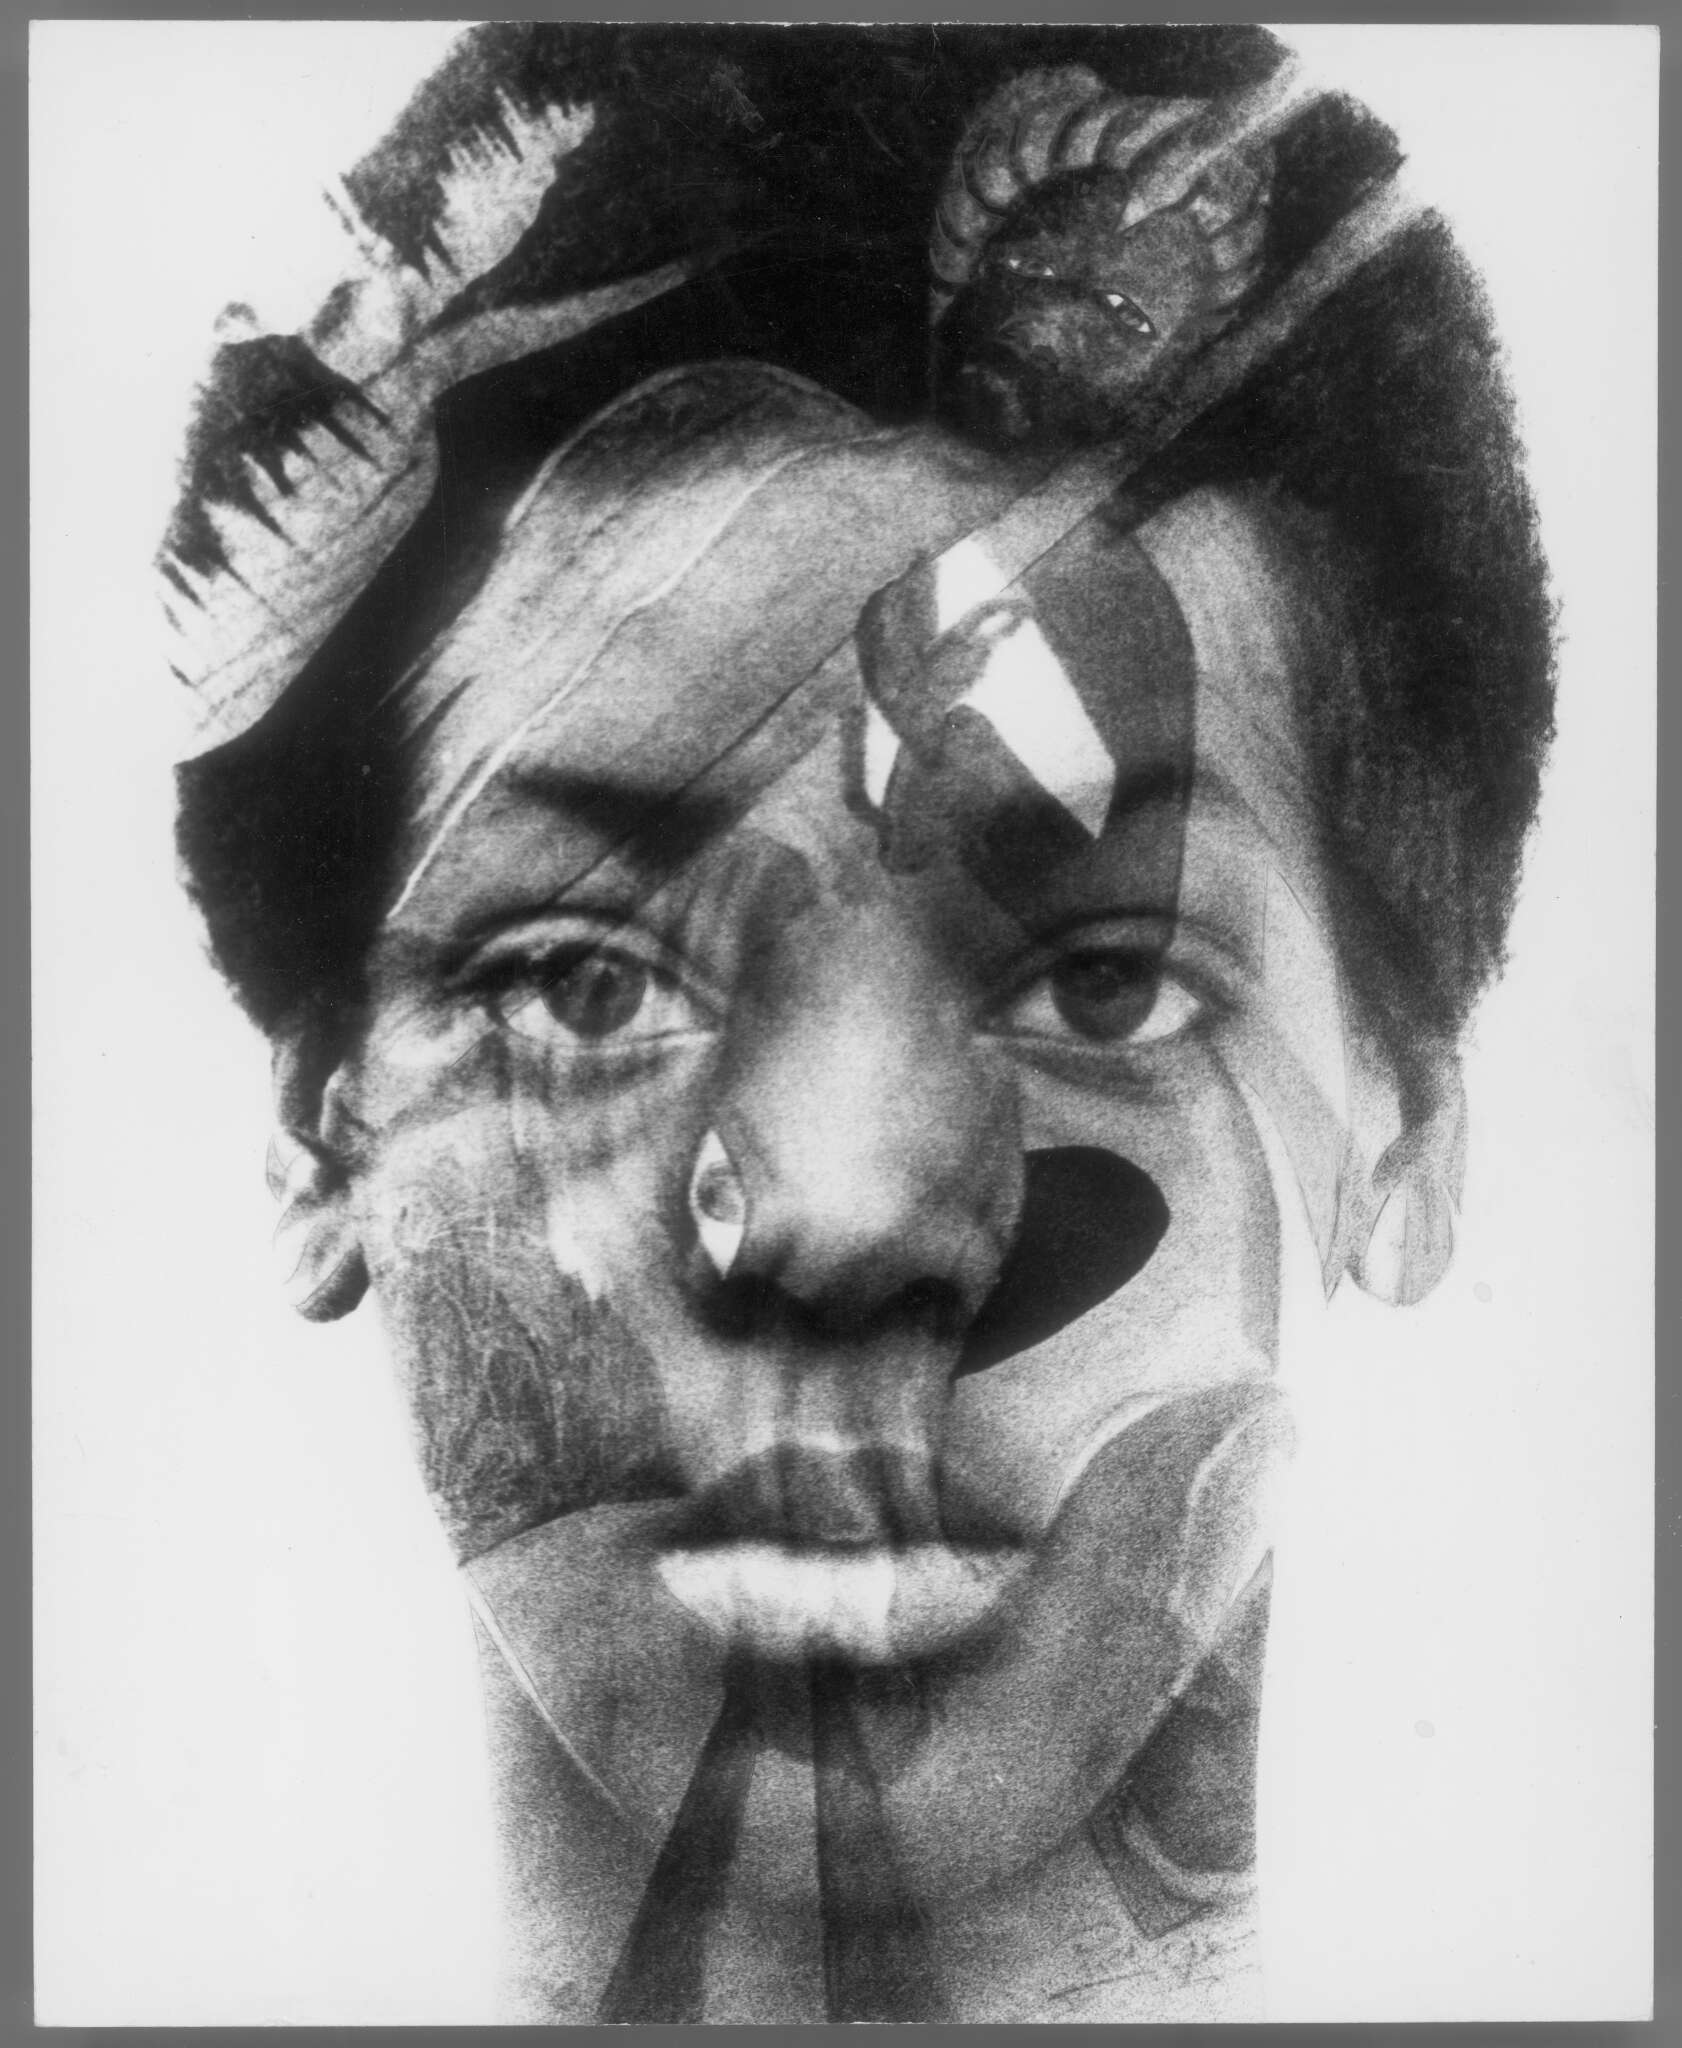 Horace Ové, 'Psychedelic Sister', 1968. Copyright of the artist